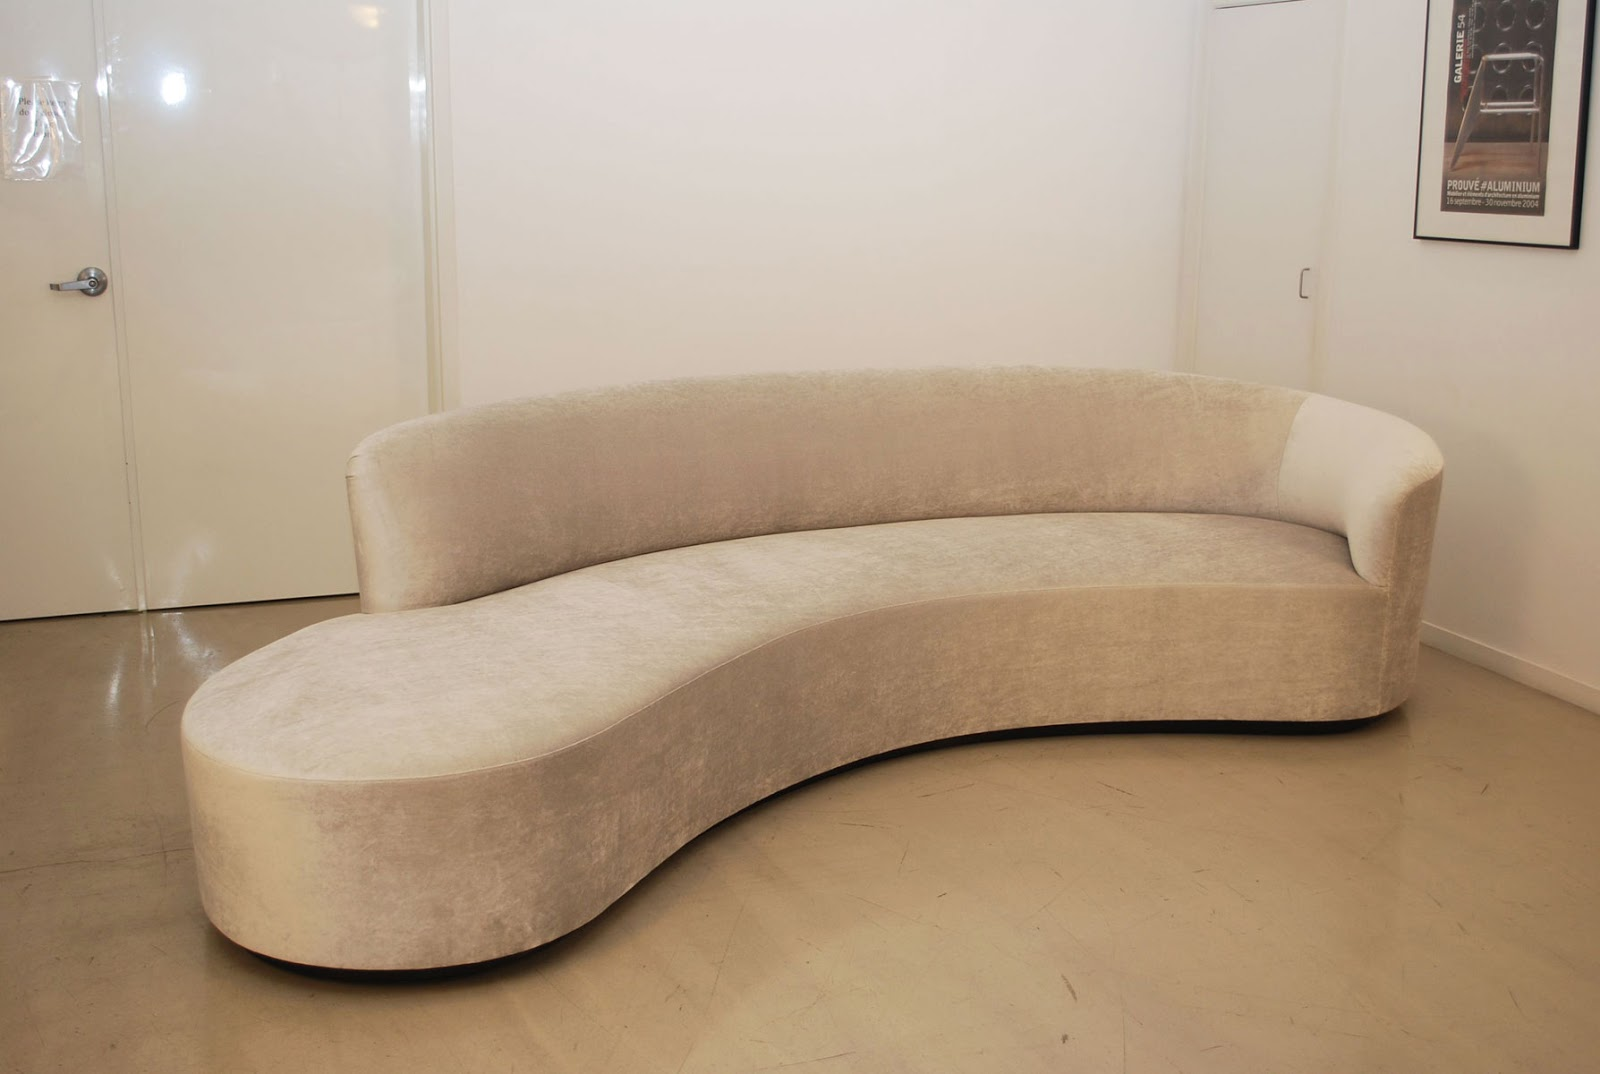 Elegant Curved Sofa 64 On Office Sofa Ideas with Curved Sofa